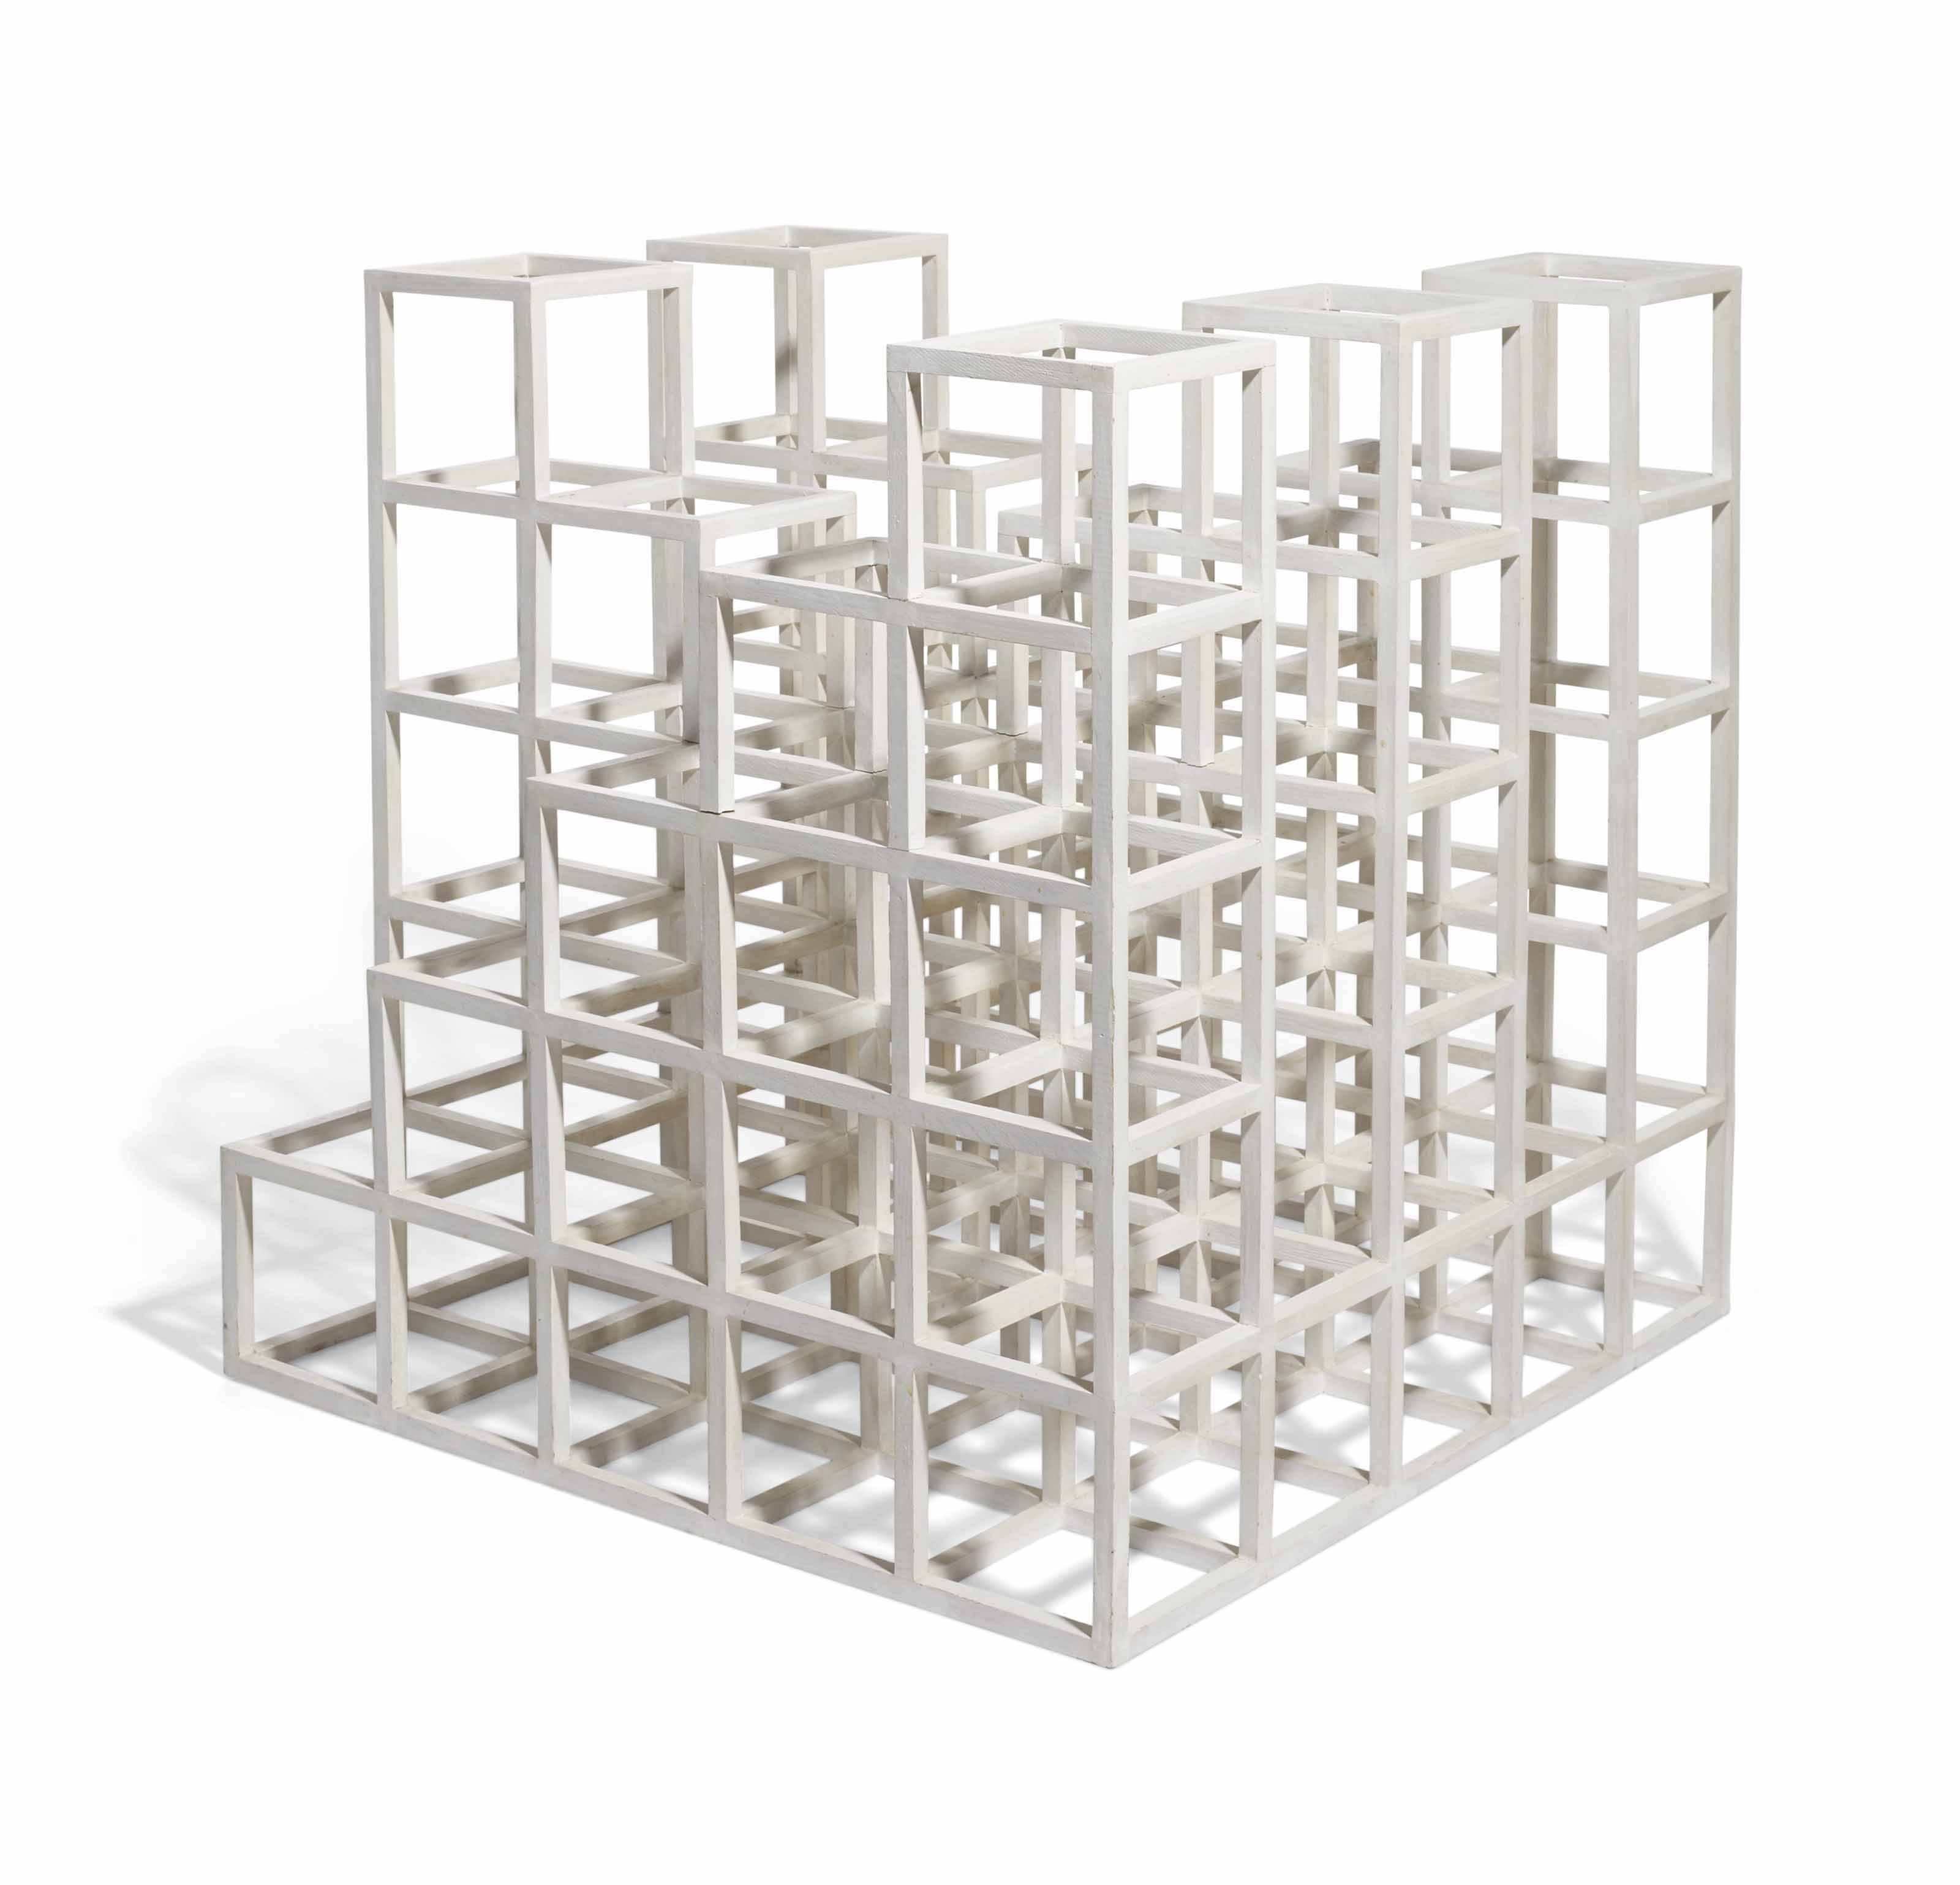 Cube structure based on five modules